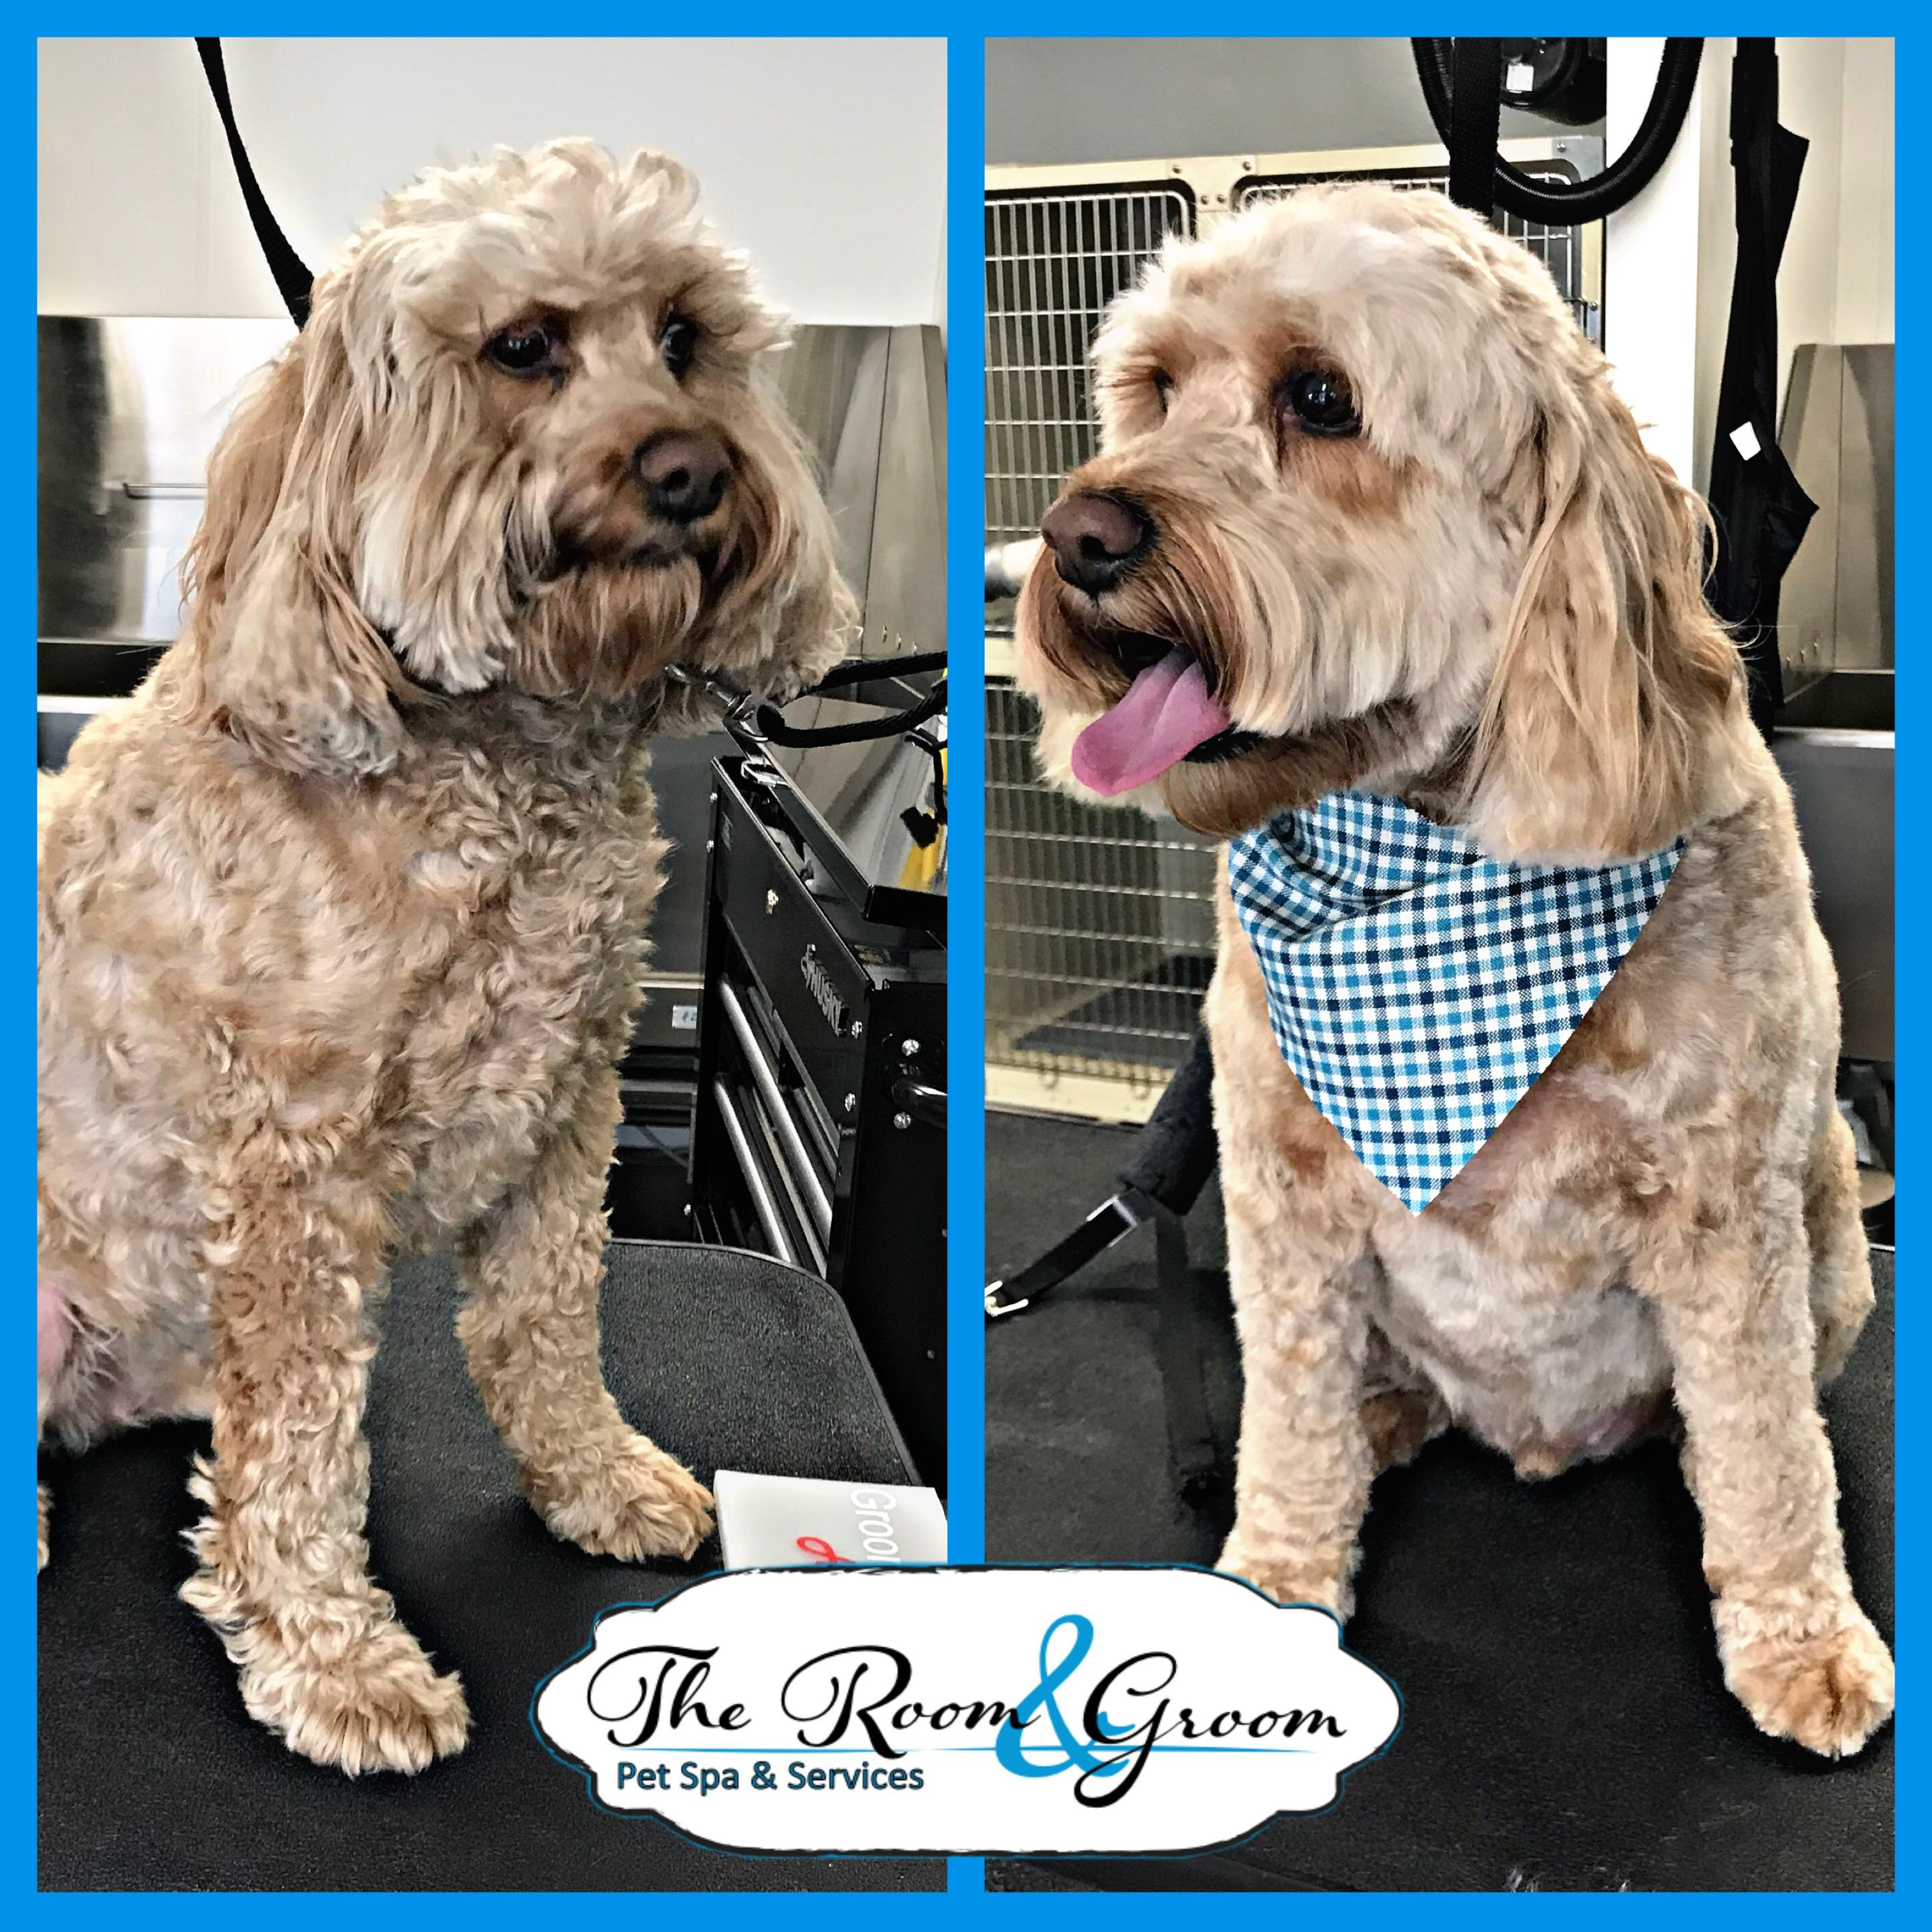 The Room & Groom, Pet Spa & Services image 67